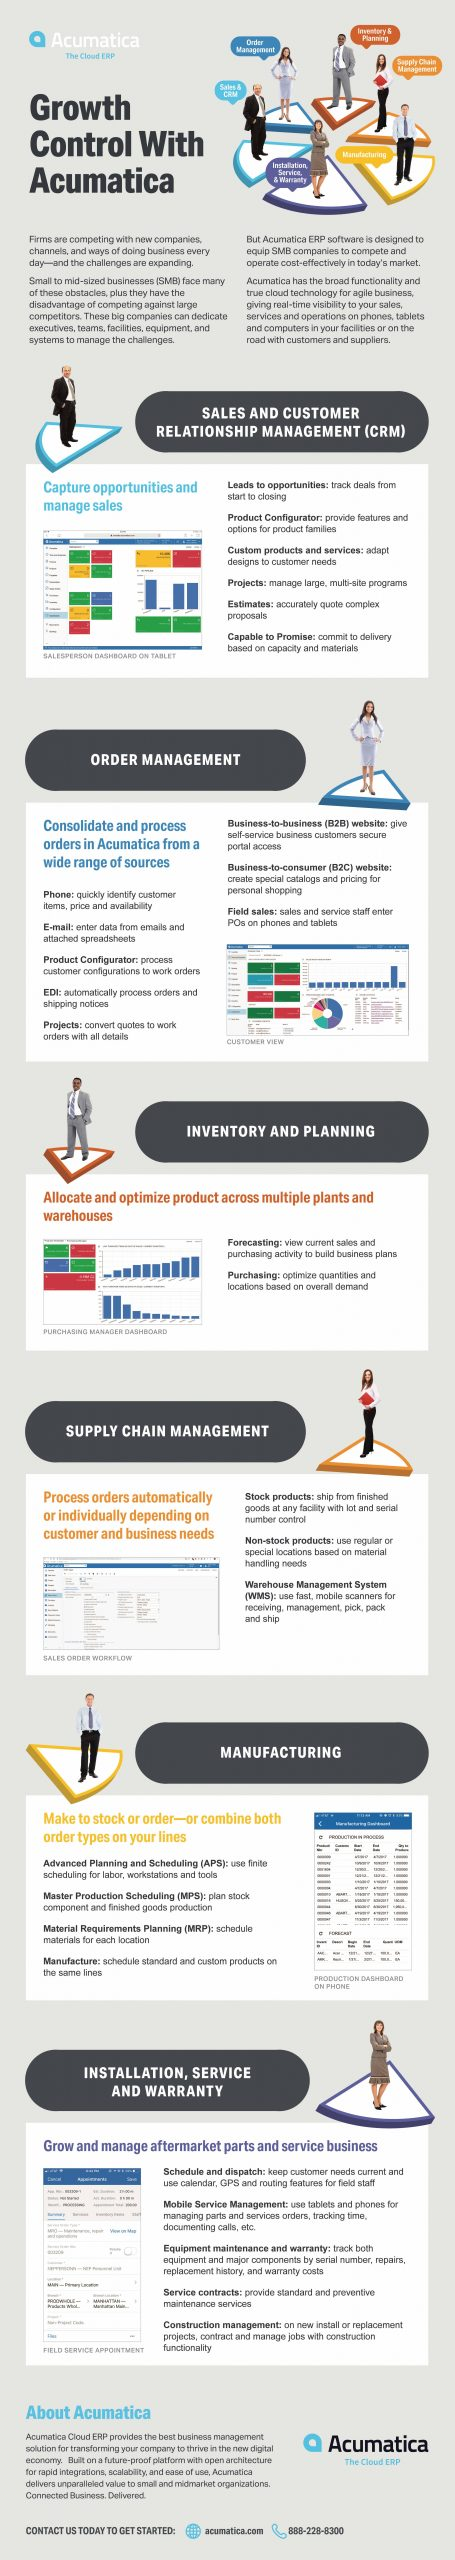 Infographic-Growth-Control-With-Acumatica-190815